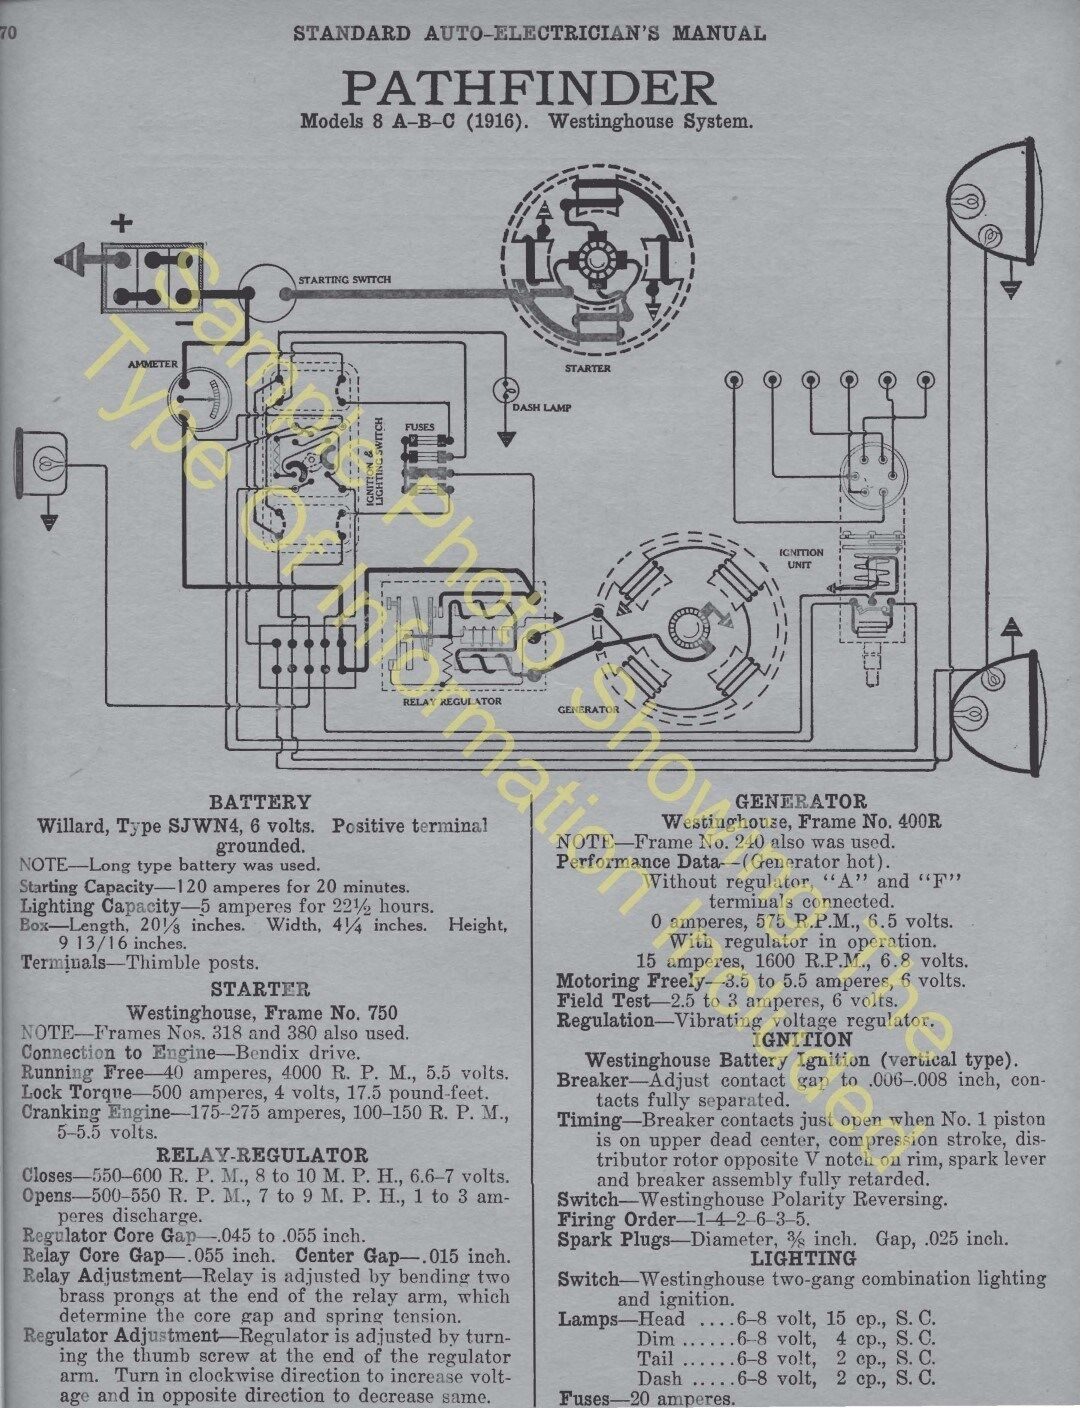 Pierce Arrow Wiring Diagram And Schematics Of Fire Engine Series 4 1916 1918 Car Electric System Specs 397 1 1only